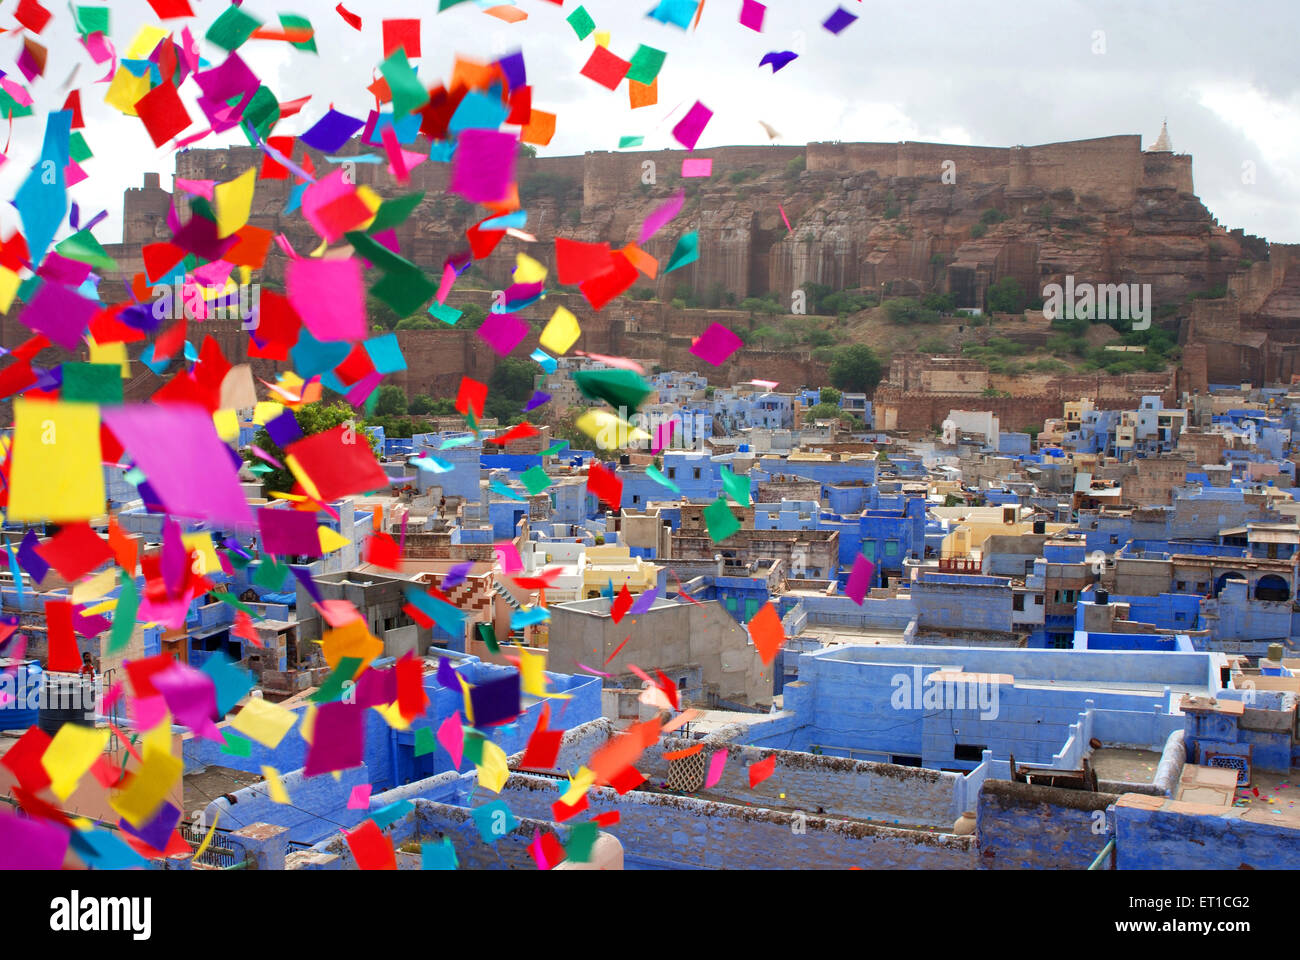 Mehrangarh fort and blue houses colourful pieces of papers flying ; Jodhpur ; Rajasthan ; India Stock Photo